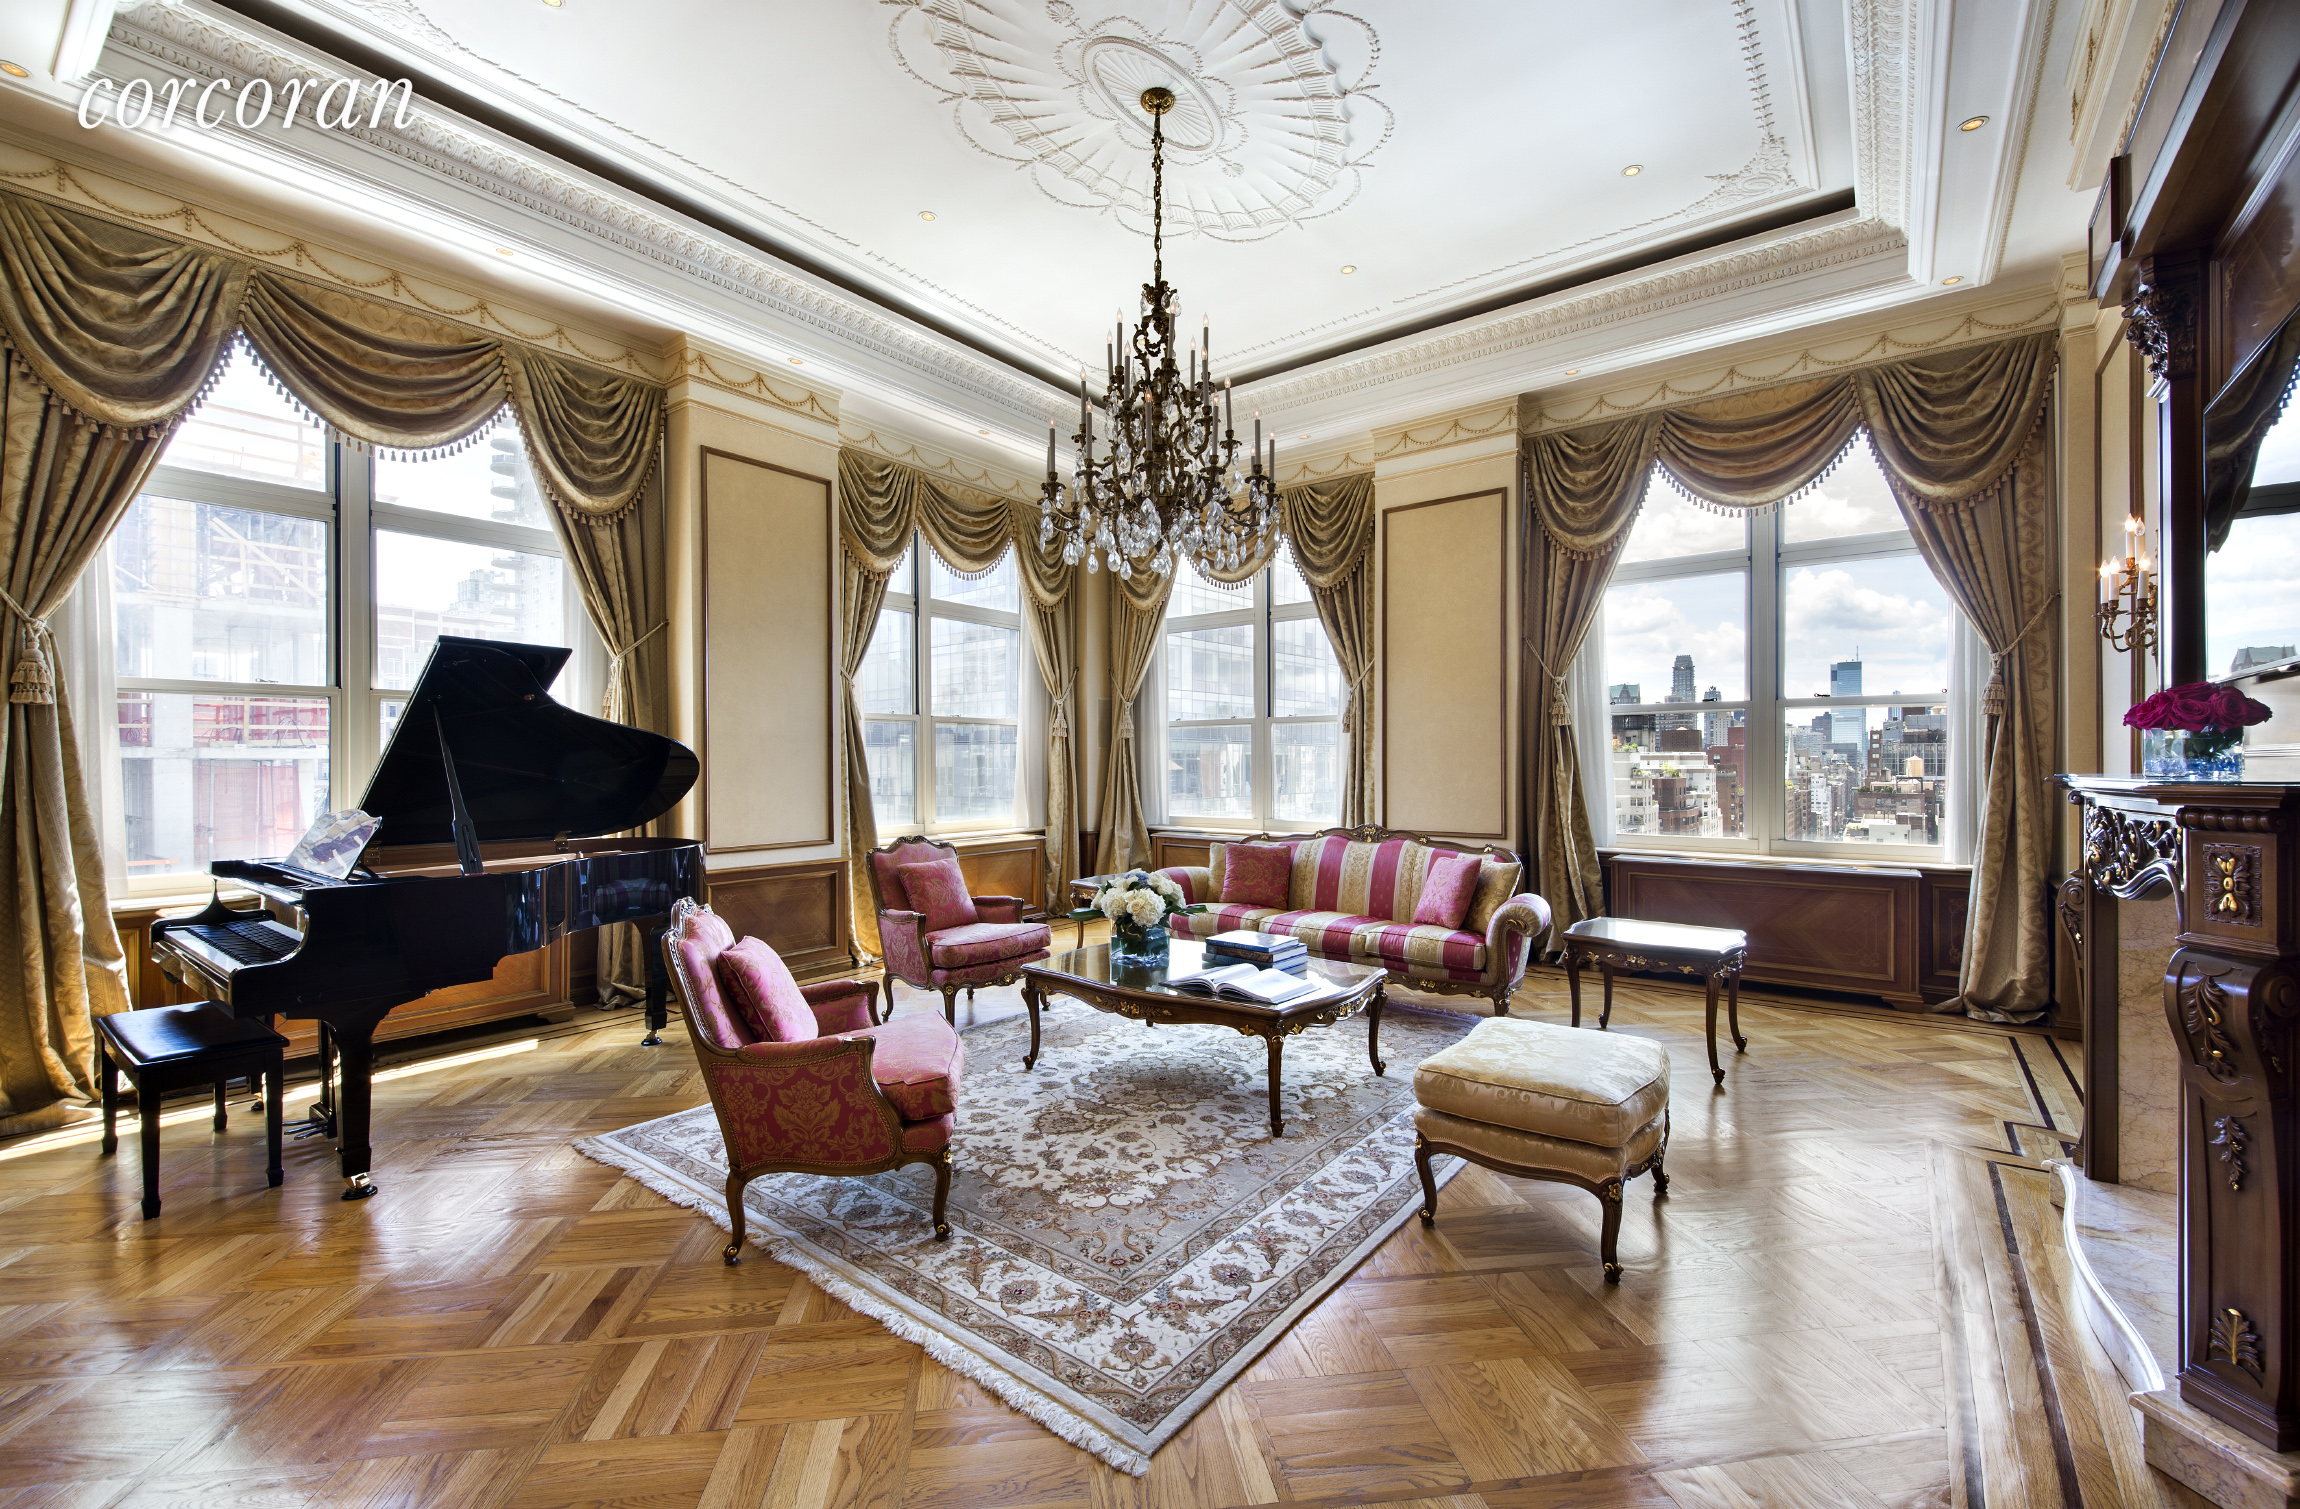 OPEN HOUSES NOT PERMEATED FOR AN APPOINTMENT CLICK SELLER  AGENT FOR AN APPOINTMENT TO VIEW! PARK AVENUE TOWER CONDO Spectacular view renovated 4 Bed , 3,5 Bath apartment This elegant, wonderfully proportioned eight room condominium is being offered for sale for the first time. The soaring nearly 14' ceilings throughout create an open and dramatic living space. The entry foyer leads into an opulent 24' x 20' living room with deep crown moldings and hand carved mantle above a decorative fireplace. Adjoining the living room is a formal dining room and chef's kitchen with high-end appliances, stained glass ceiling and fine furniture quality cabinets. The flow of these rooms is perfect for entertaining. Large oversized corner windows flood the apartment with light and provide open City views. Back past the entry foyer is a large gallery that leads into the sumptuous master bedroom suite with marble bath, dual sinks, shower and oversized soaking tub. A mezzanine level provides closet and storage space for the master suite. There is also a den which can easily be converted to a fourth bedroom with mezzanine level storage. Two more bedrooms with two full baths complete this wing of the apartment. The apartment also has a windowed home office. The apartment is 2822sf (approx.) plus  725sf (approx.) of mezzanine level. This beautiful apartment was designed by the renowned Italian architect Ezio Belotti, known for his work in Roman Orthodox churches, consulates, and embassies worldwide. The details of this outstanding home create a stunning backdrop to classic or contemporary décor and art collections. The Belloti team consists of highly skilled architects and interior designers. This historic company is admired around the world and has been creating their exclusive furniture collections since 1935. The Ezio Bellotti artisans have succeeded in maintaining and respecting history and tradition, while using cutting-edge technology in their interior designs. Park Avenue Court is 